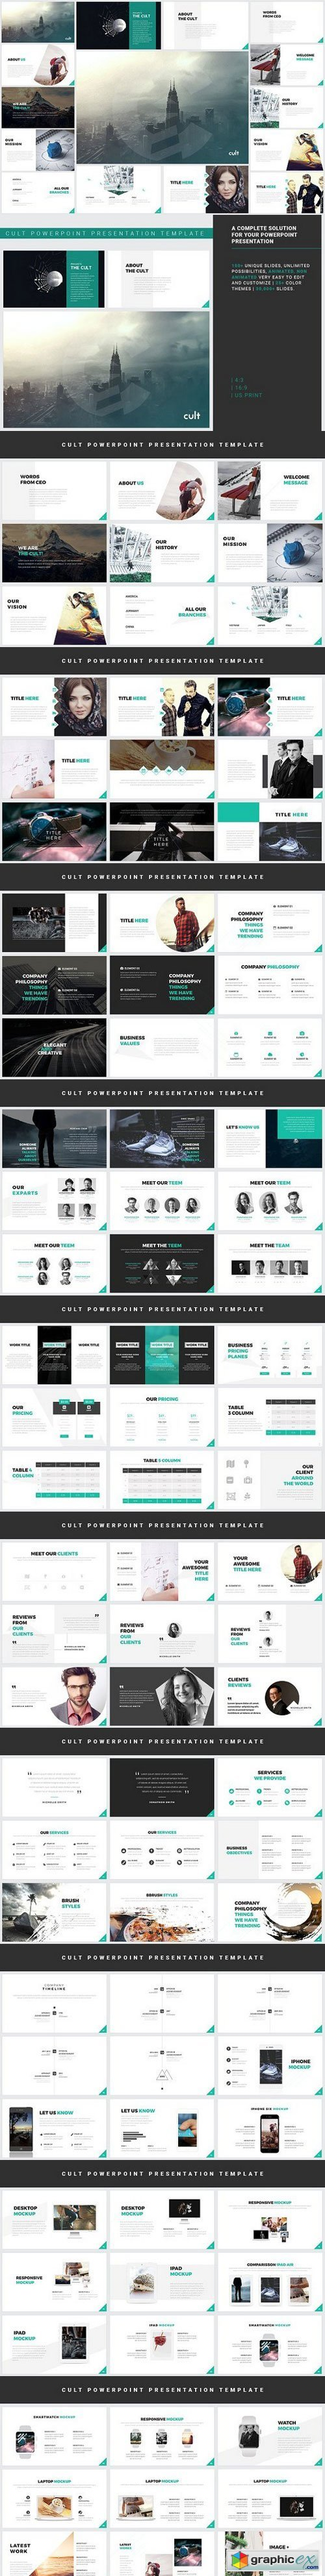 Powerpoint Template - Cult